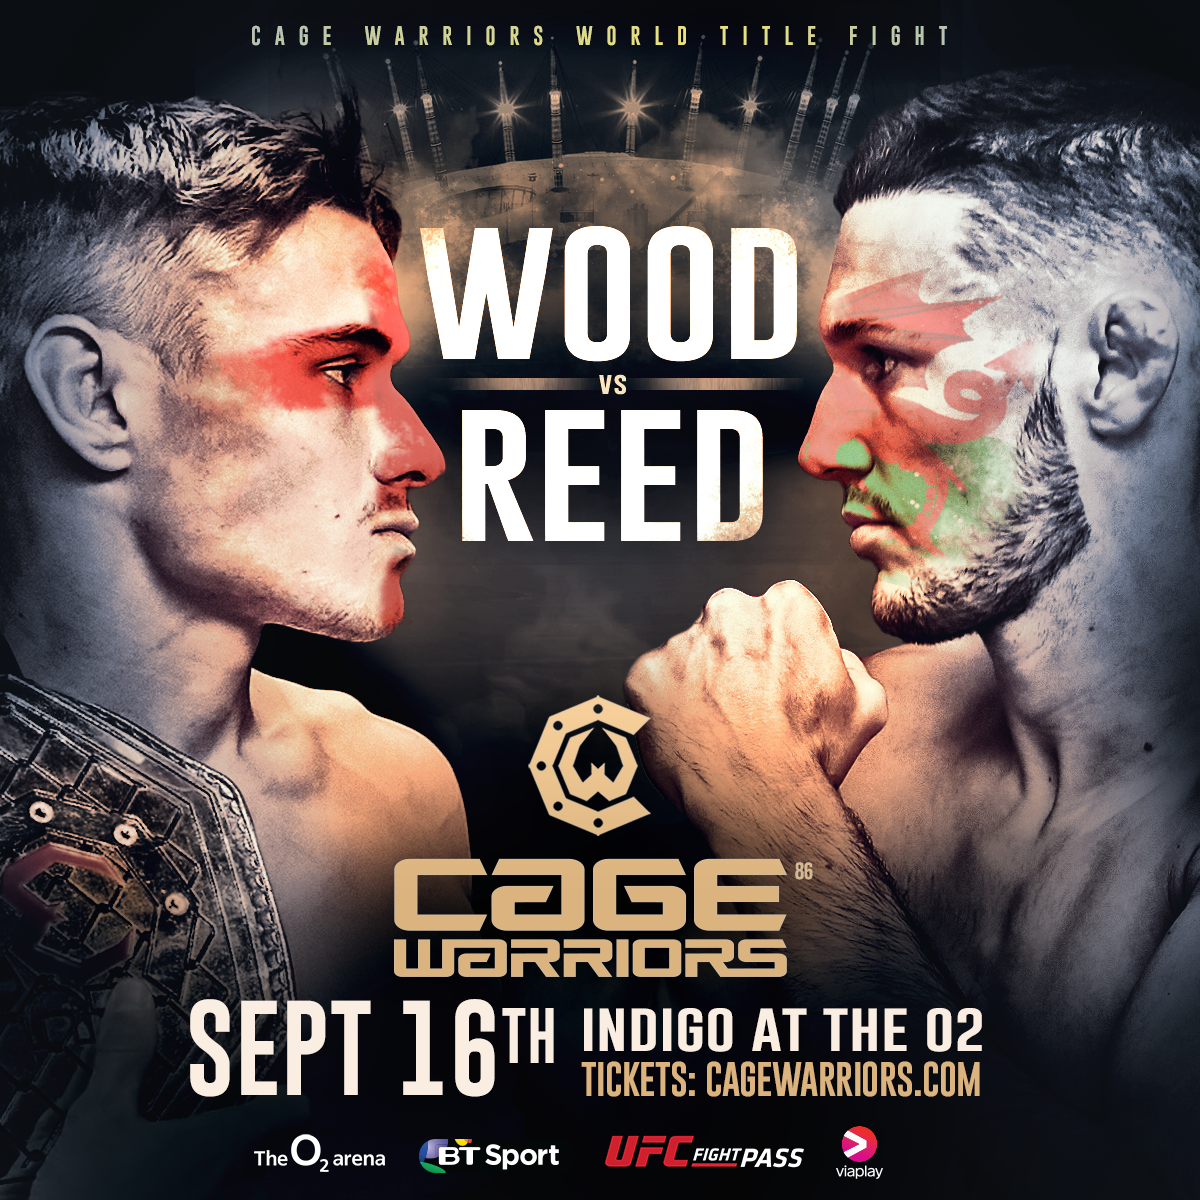 Pin by Skippy Cohen on MMA Cage warriors, Mixed martial